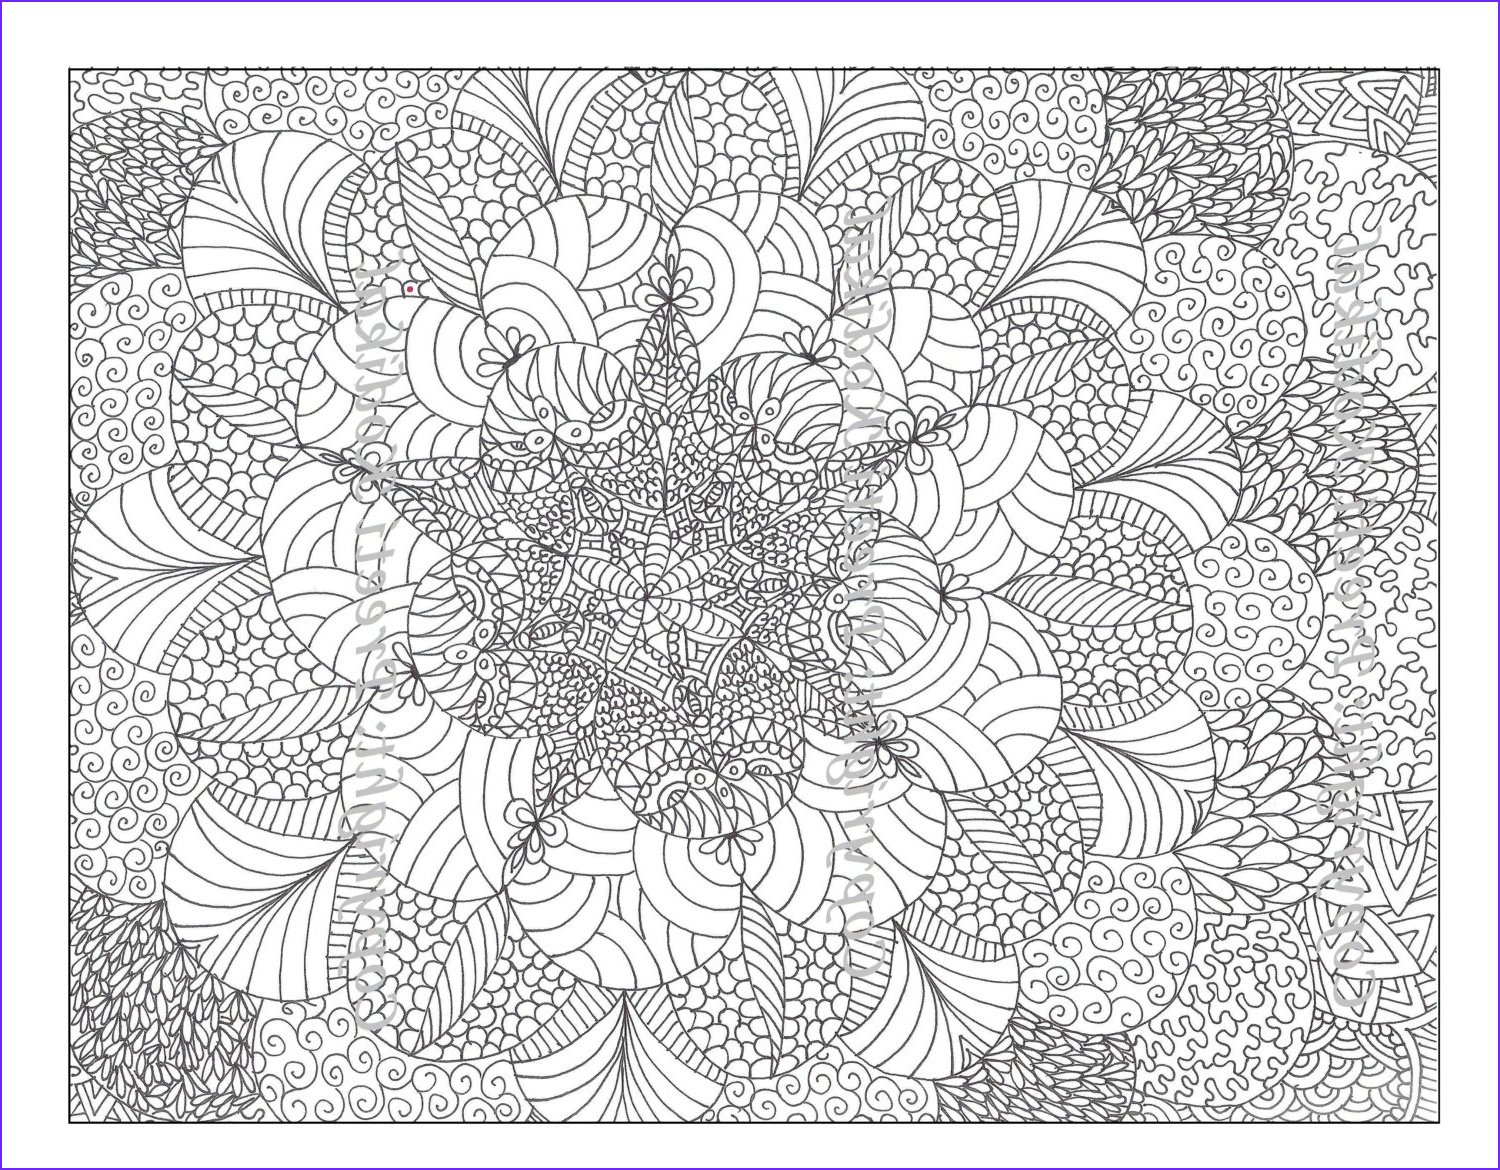 Coloring Pages Printable Adults New Gallery Free Printable Abstract Coloring Pages for Adults